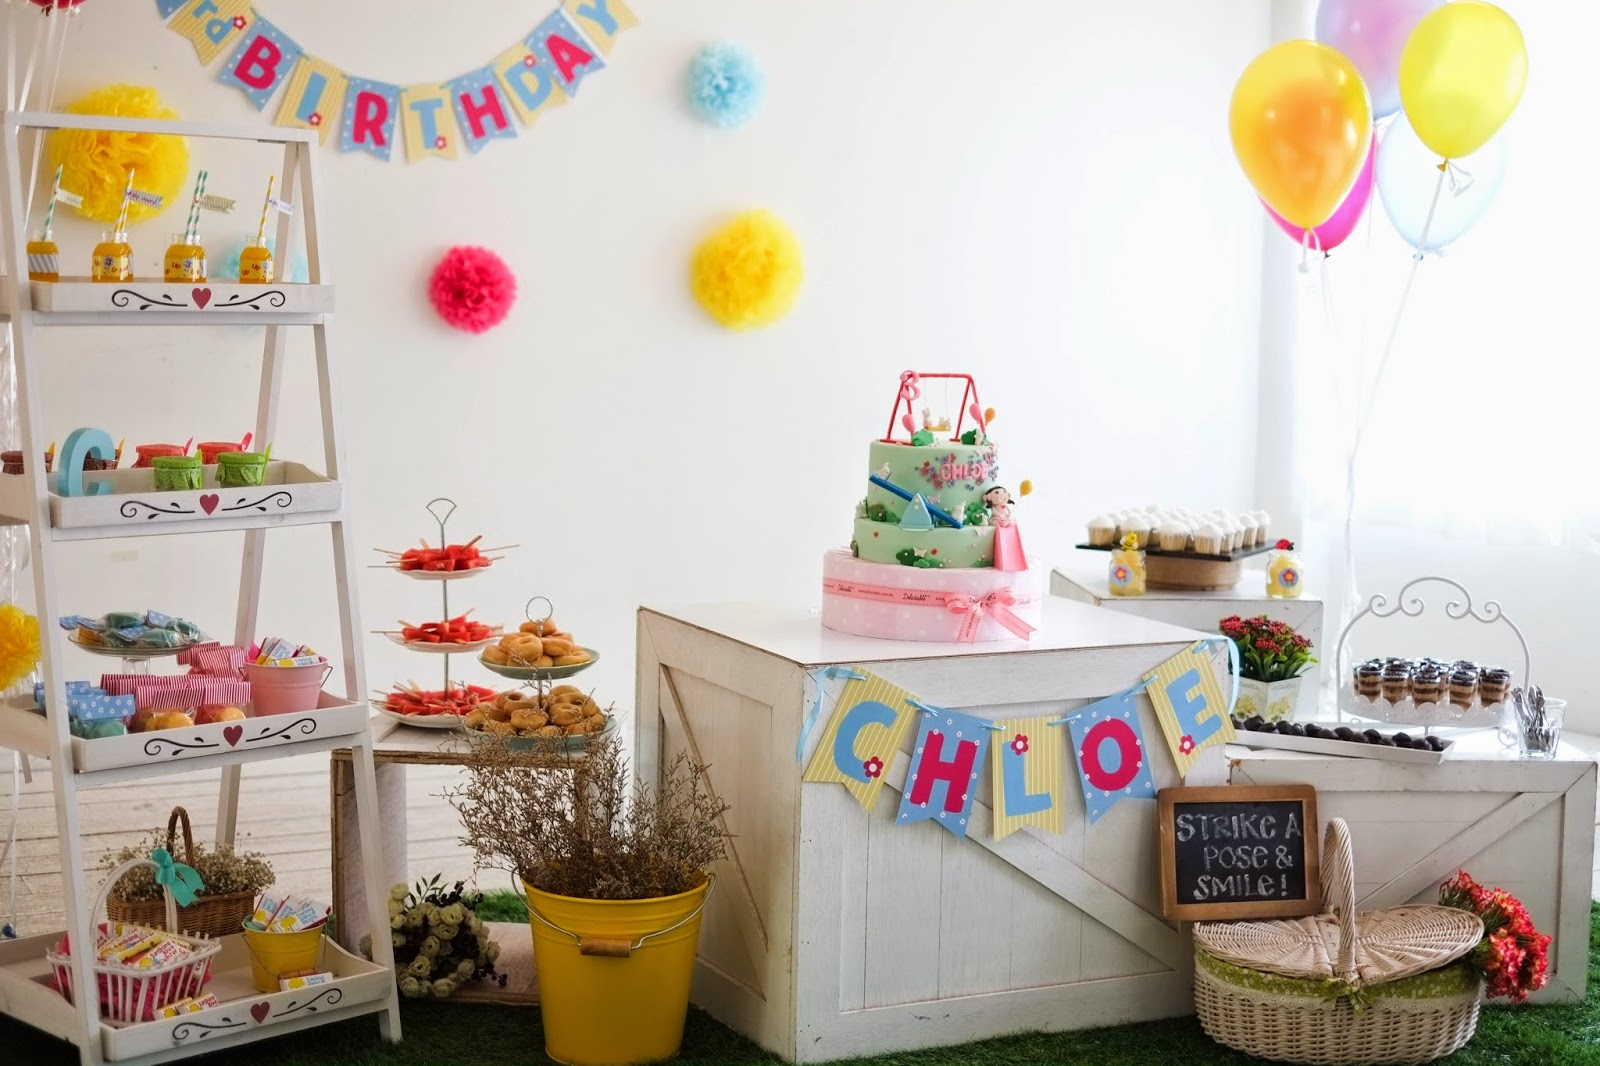 BABYLICIOUS PLAYGROUND PICNIC PARTY